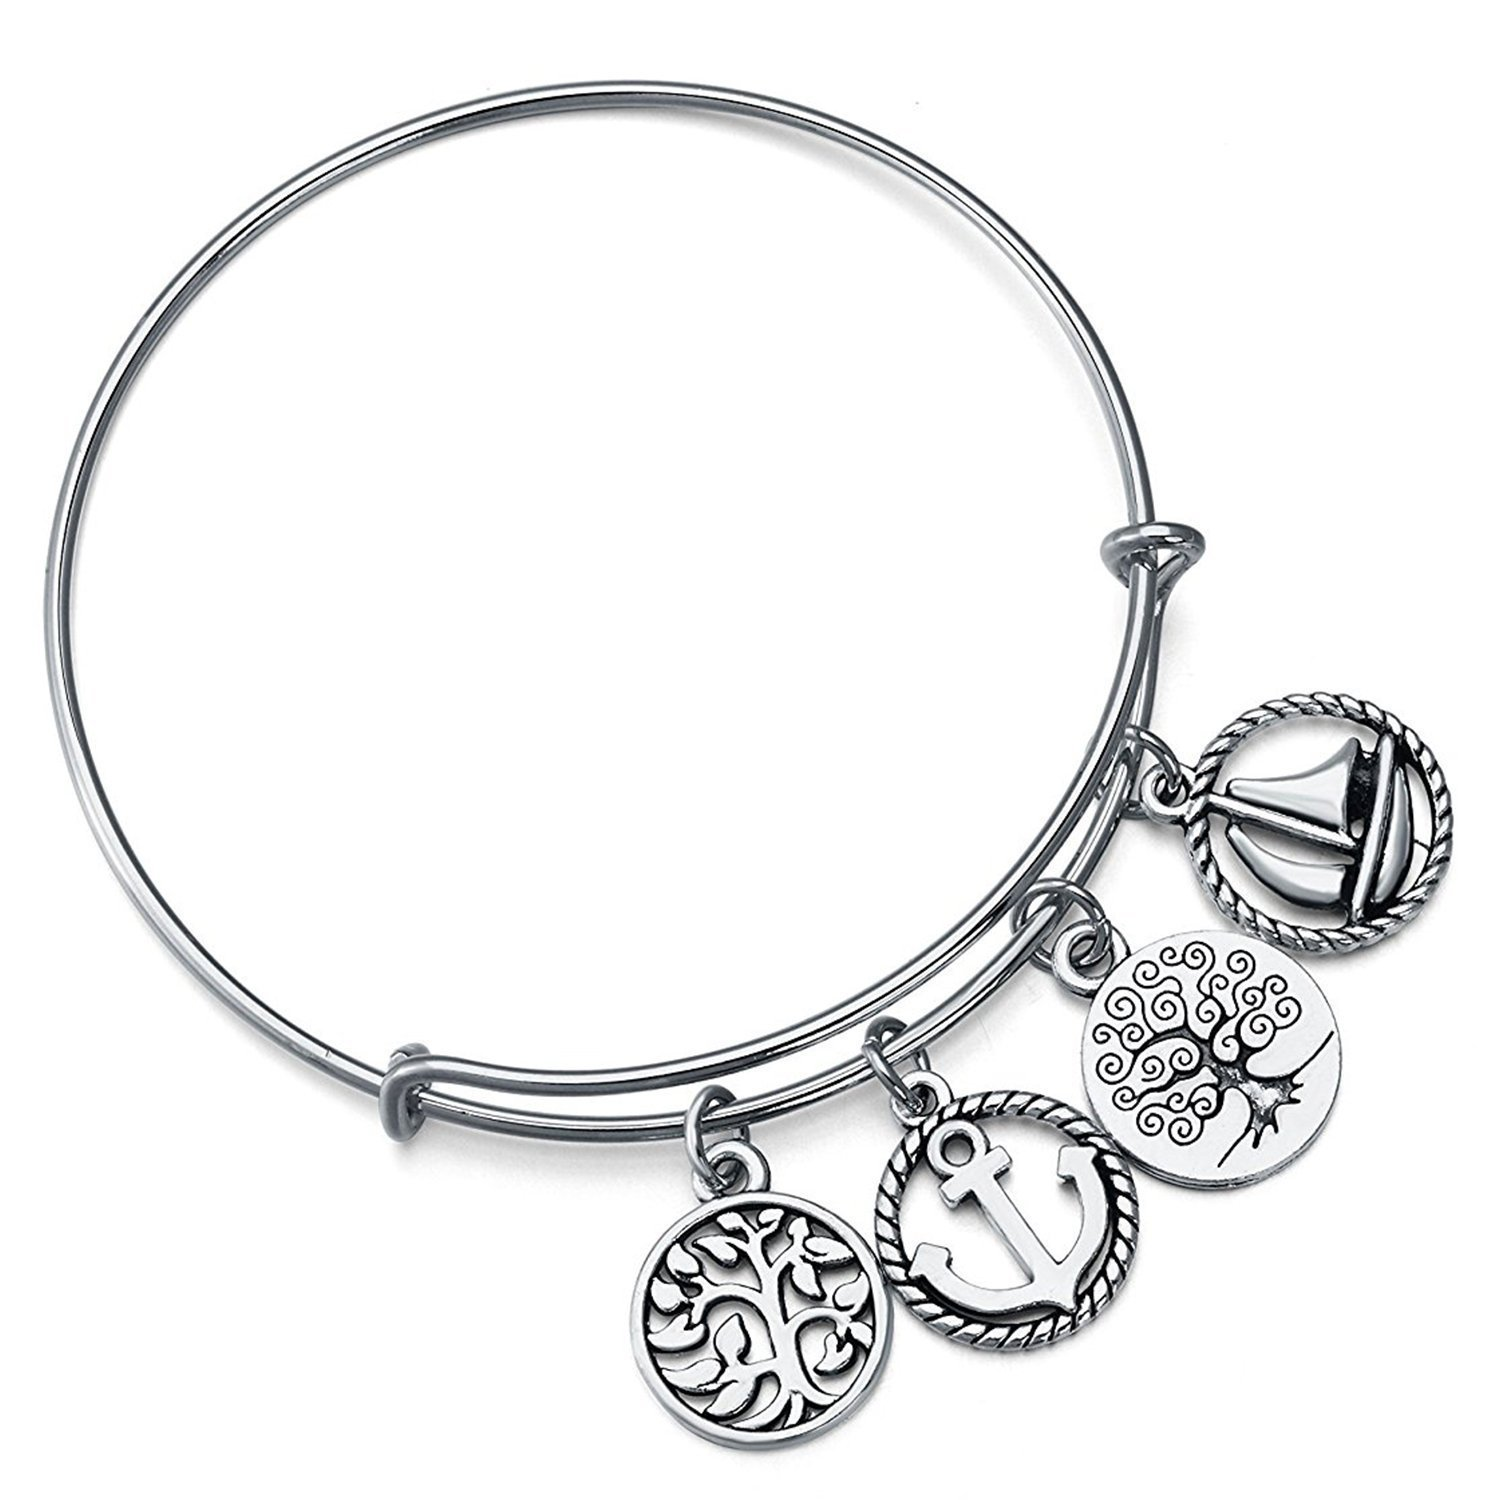 Majesto Sea Anchor Boat Tree Expandable Wire Bangle Charm Bracelet Adjustable for Women Teen Girls Jewelry Gift